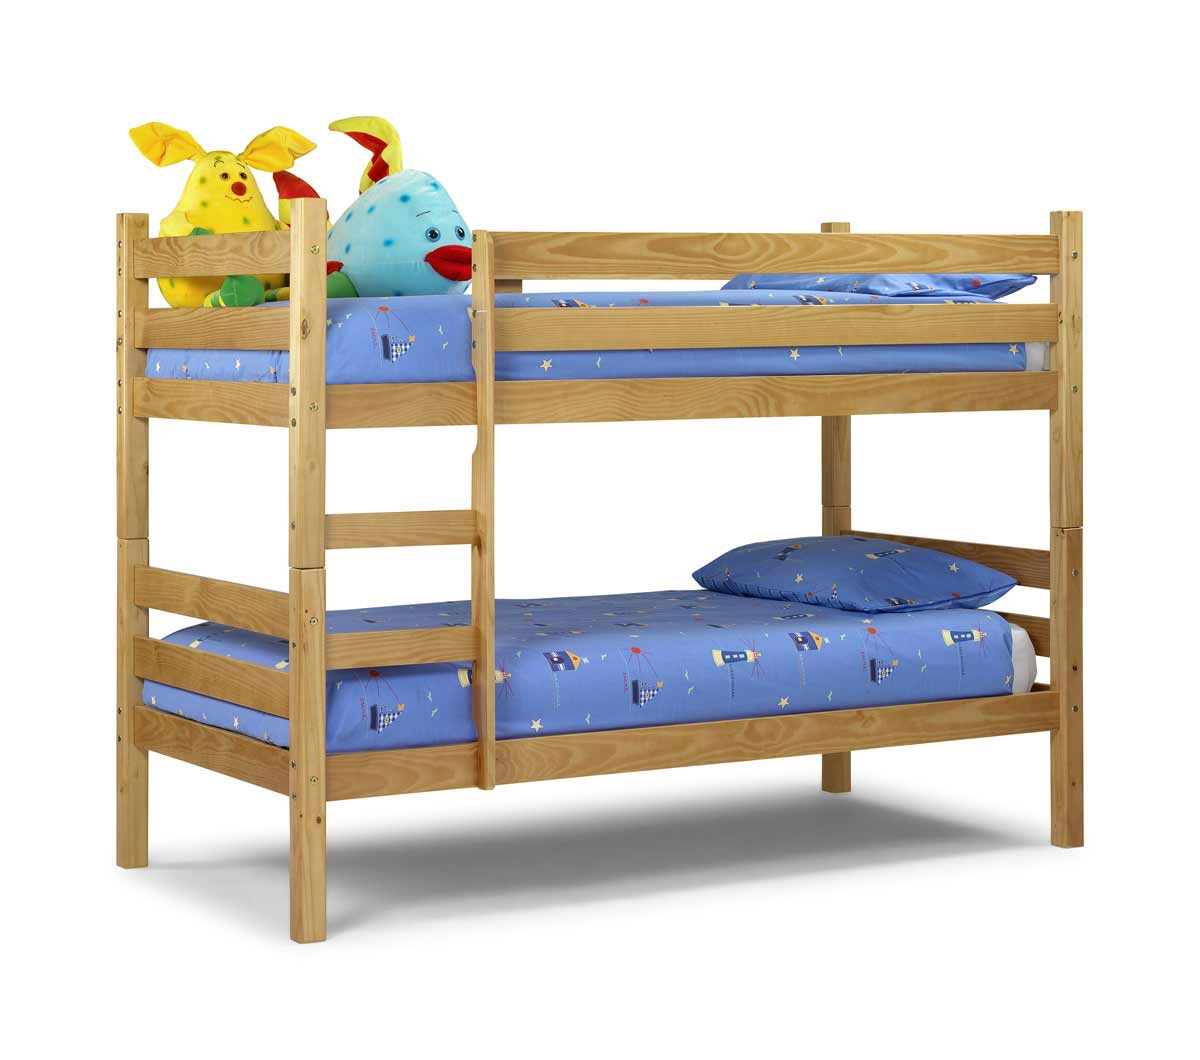 Wyoming Kids Wooden Bunk Bed From Julian Bowen